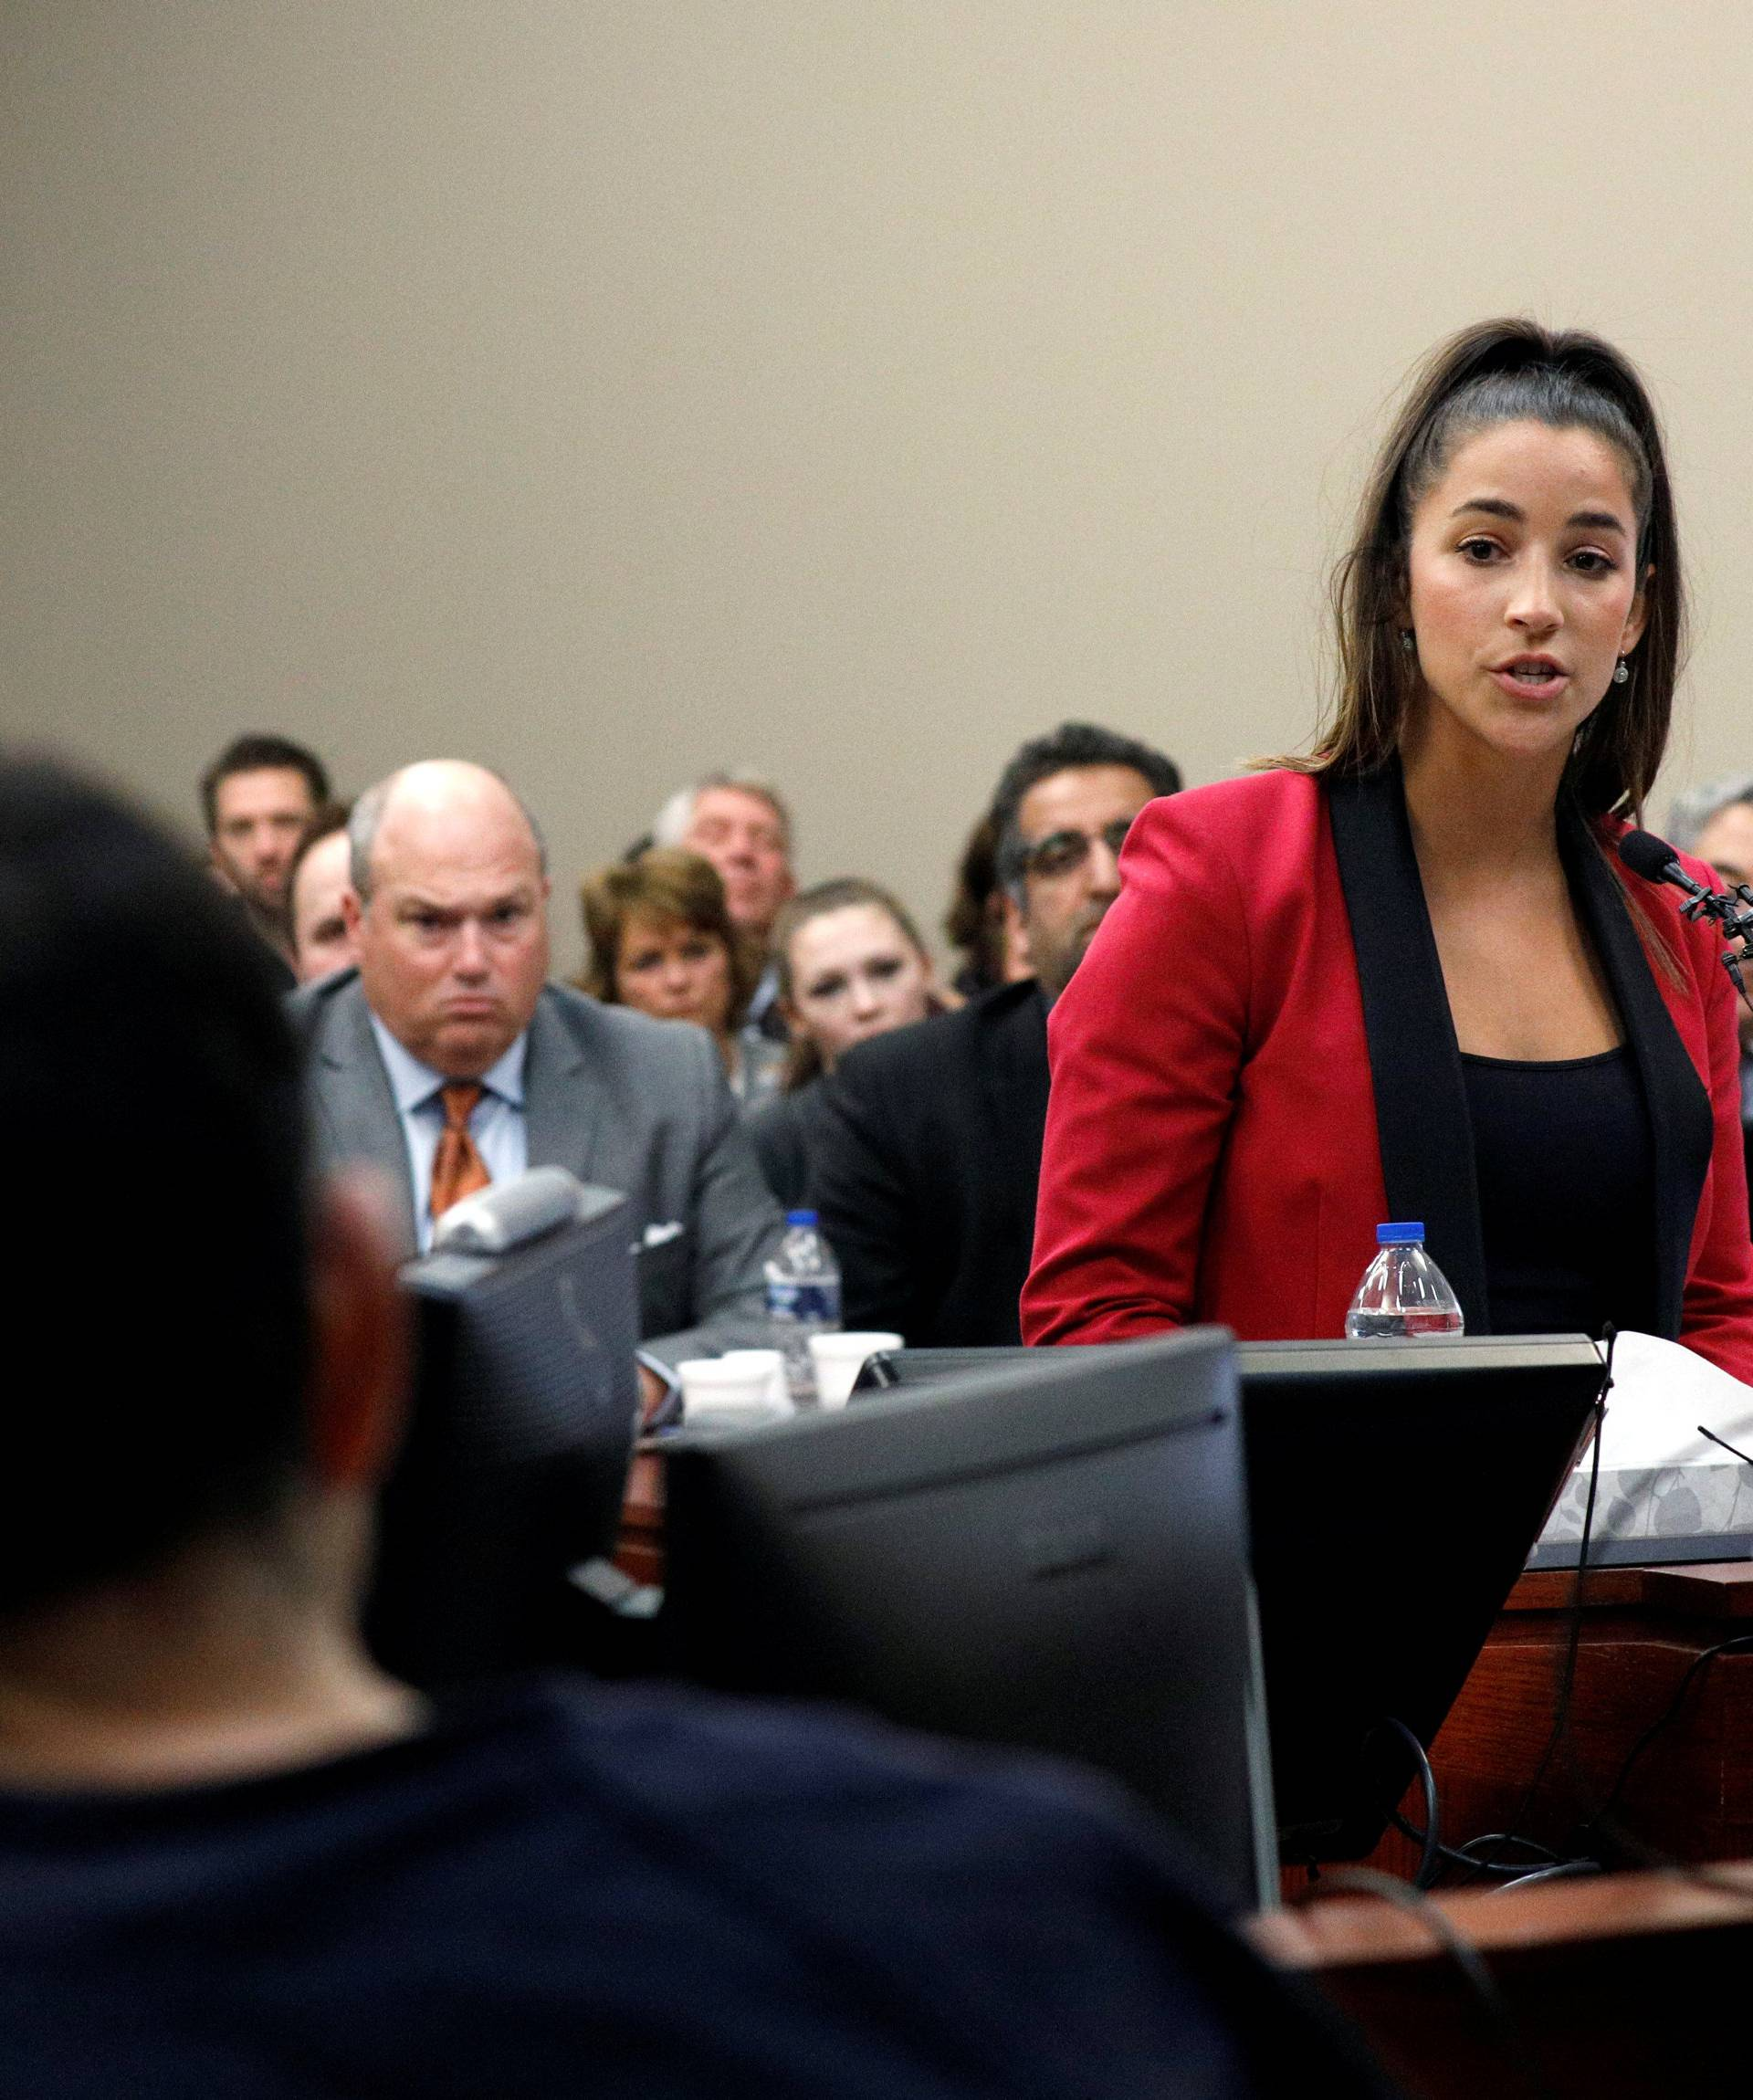 Victim and Olympic gold medalist Aly Raisman speaks at the sentencing hearing for Larry Nassar, a former team USA Gymnastics doctor who pleaded guilty in November 2017 to sexual assault charges, in Lansing